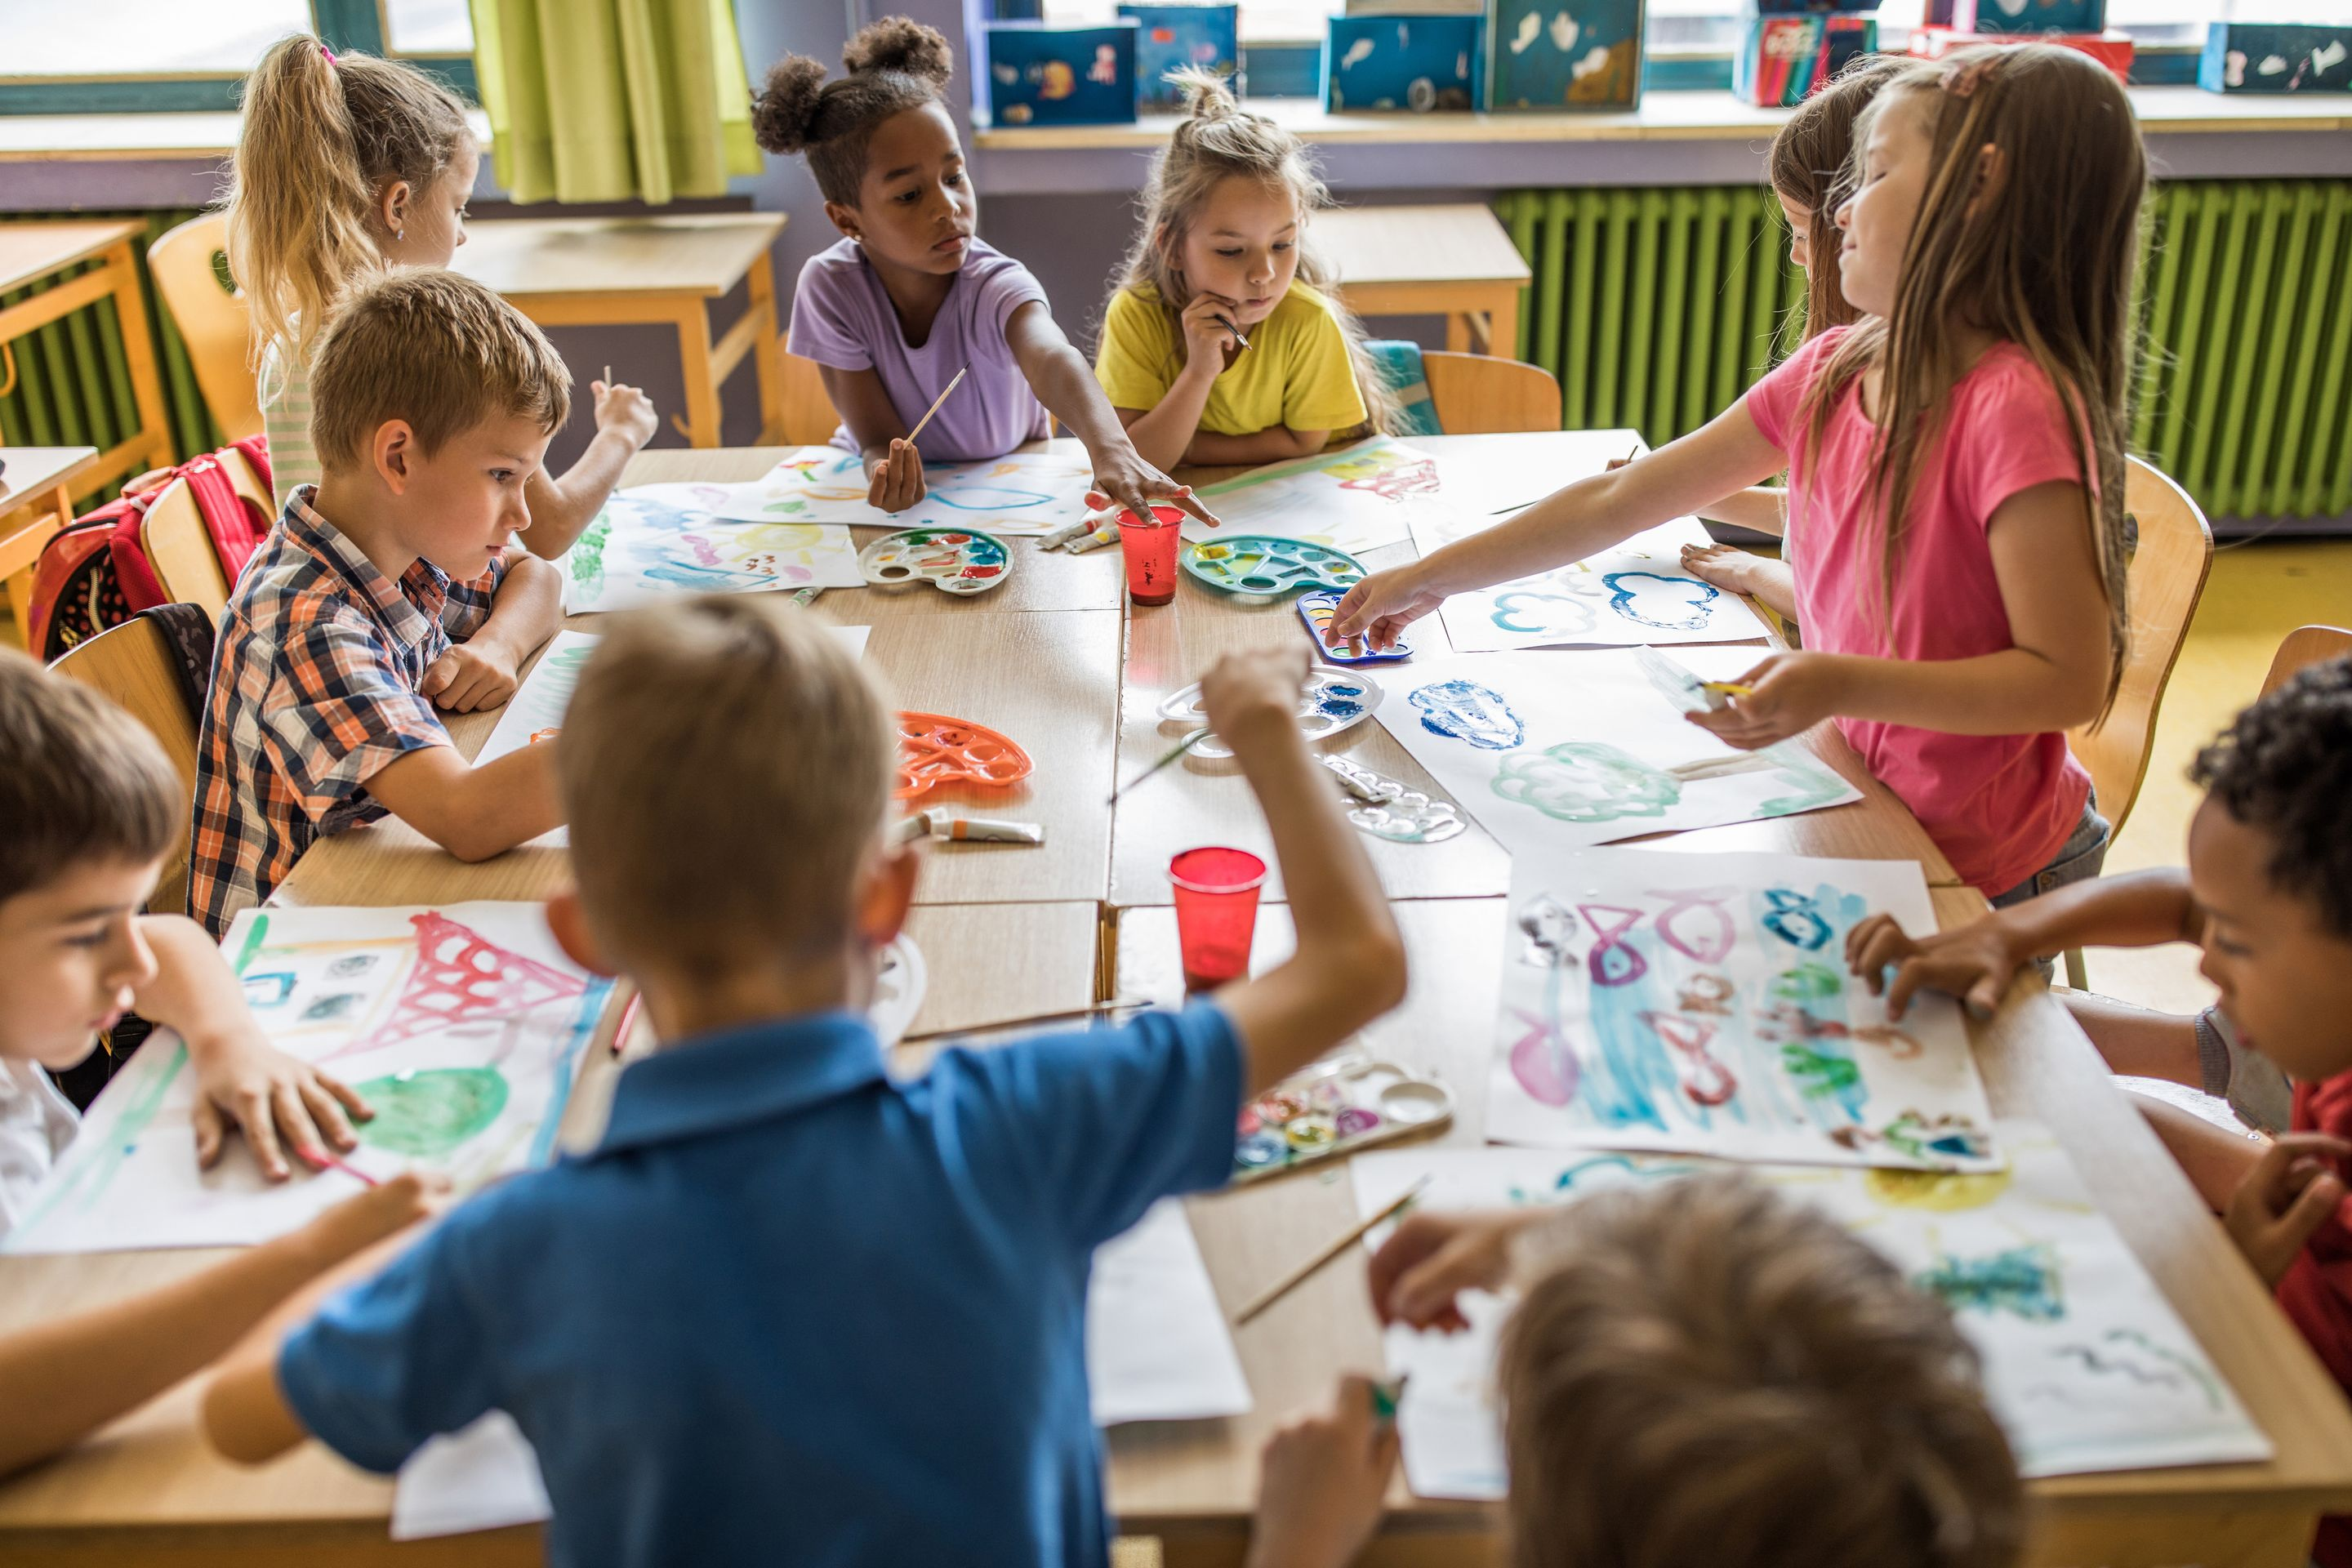 A group of elementary students create art at a large table together in a classroom